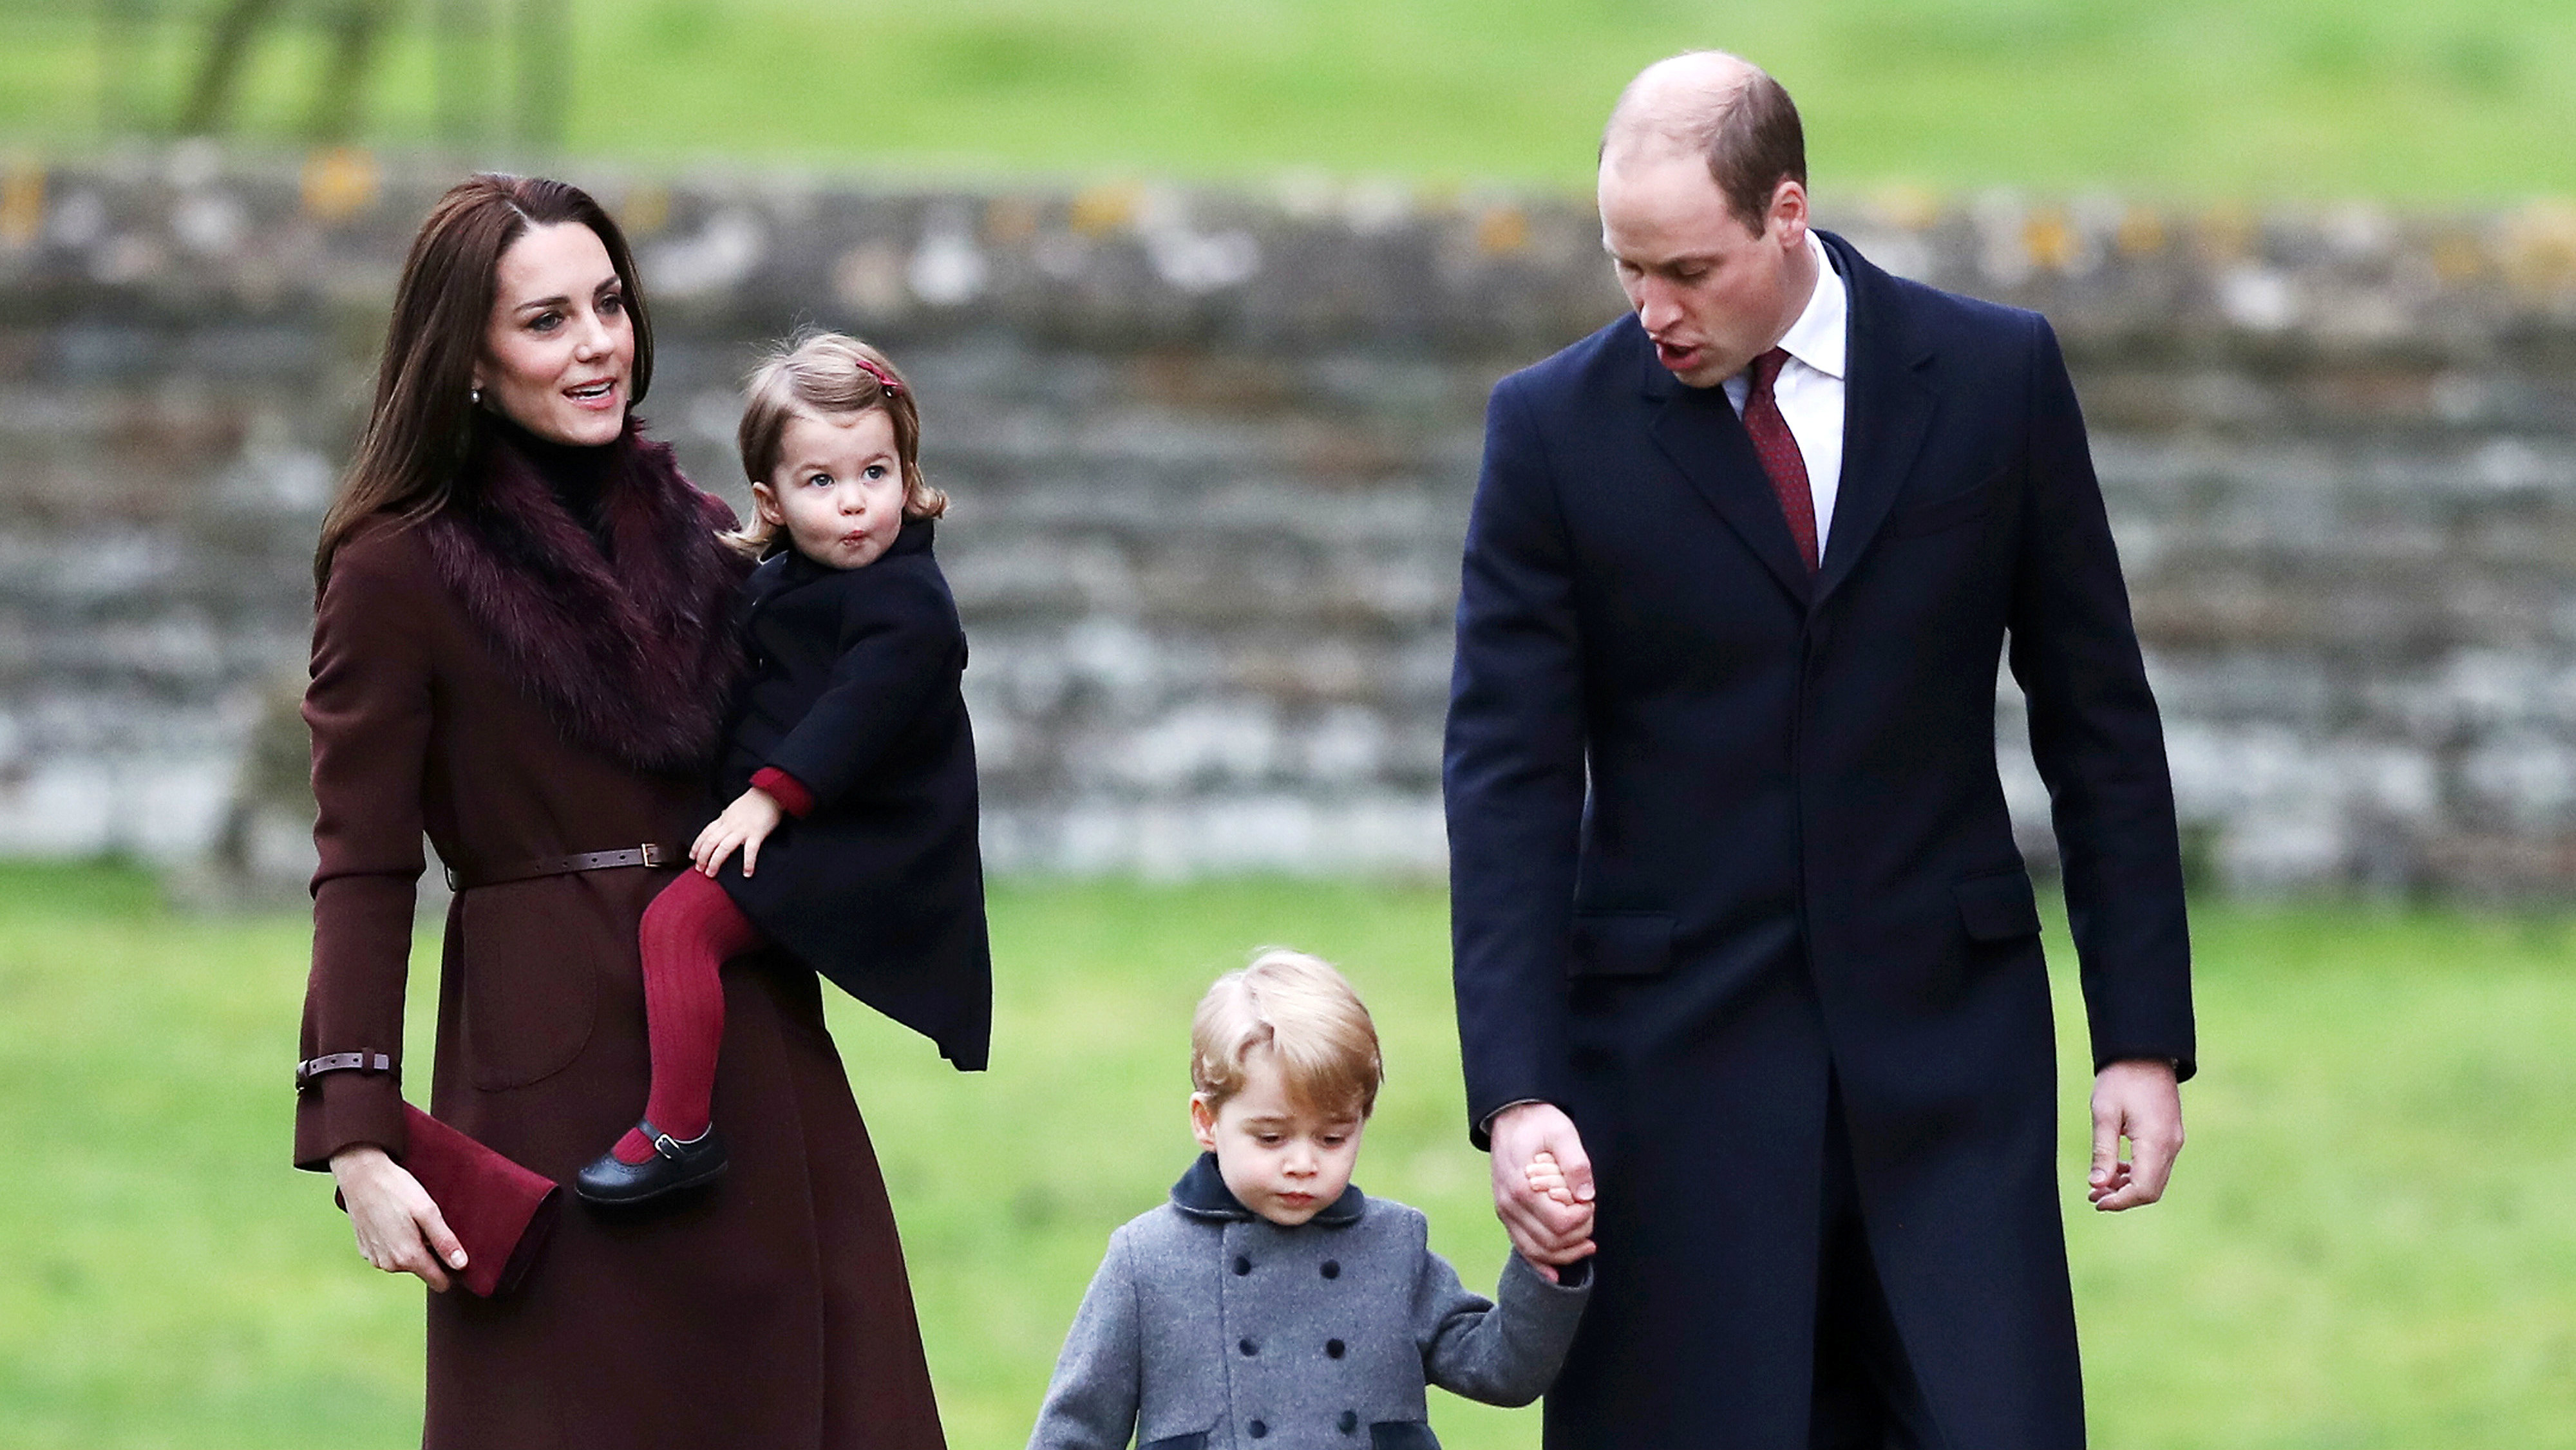 The Duke and Duchess of Cambridge and the family of the Duchess attend a Christmas Day service near Bucklebury